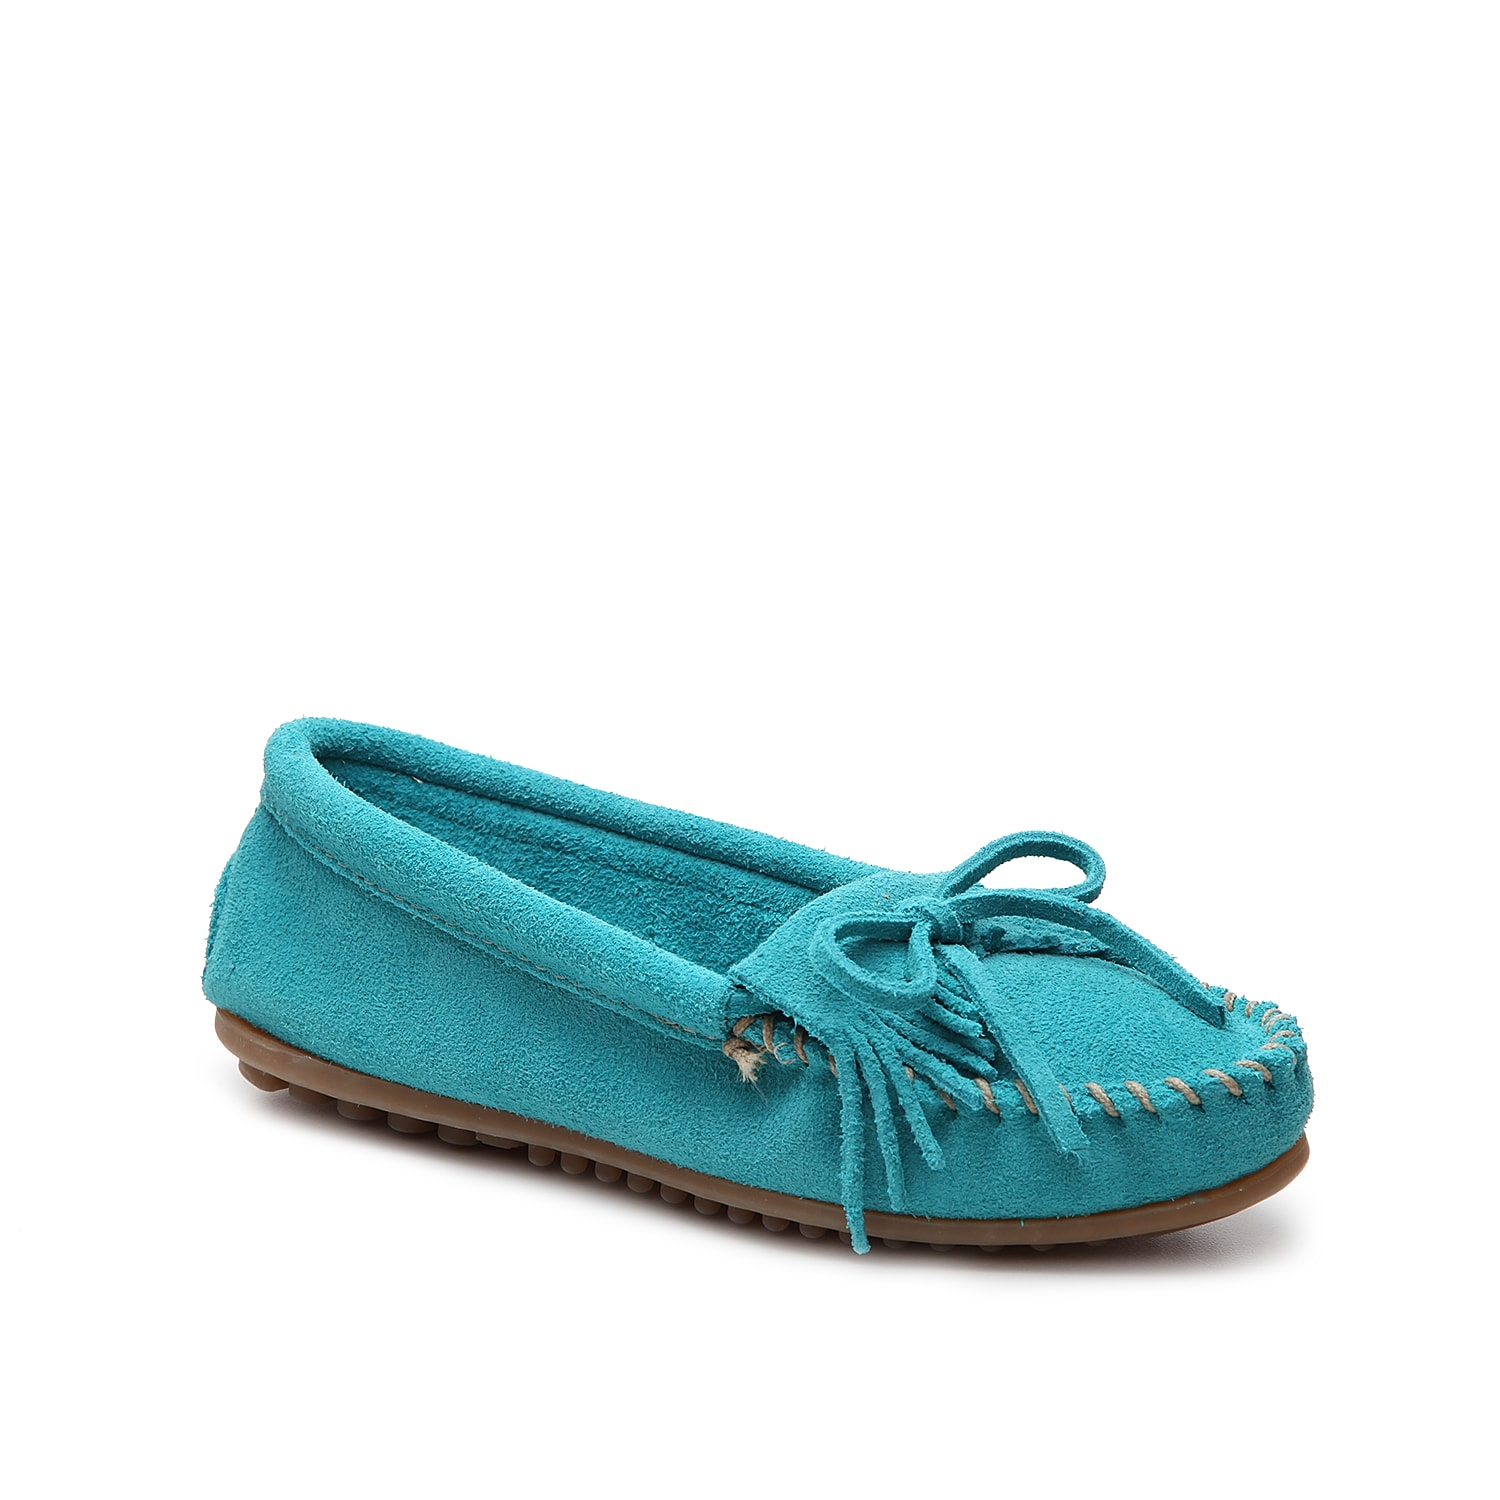 You\\\'re going to look so cute in this trendy Kilty moccasin by Minnetonka! This flat will be your favorite weekend pair due to its comfy construction, kiltie detailing, and fun styling.